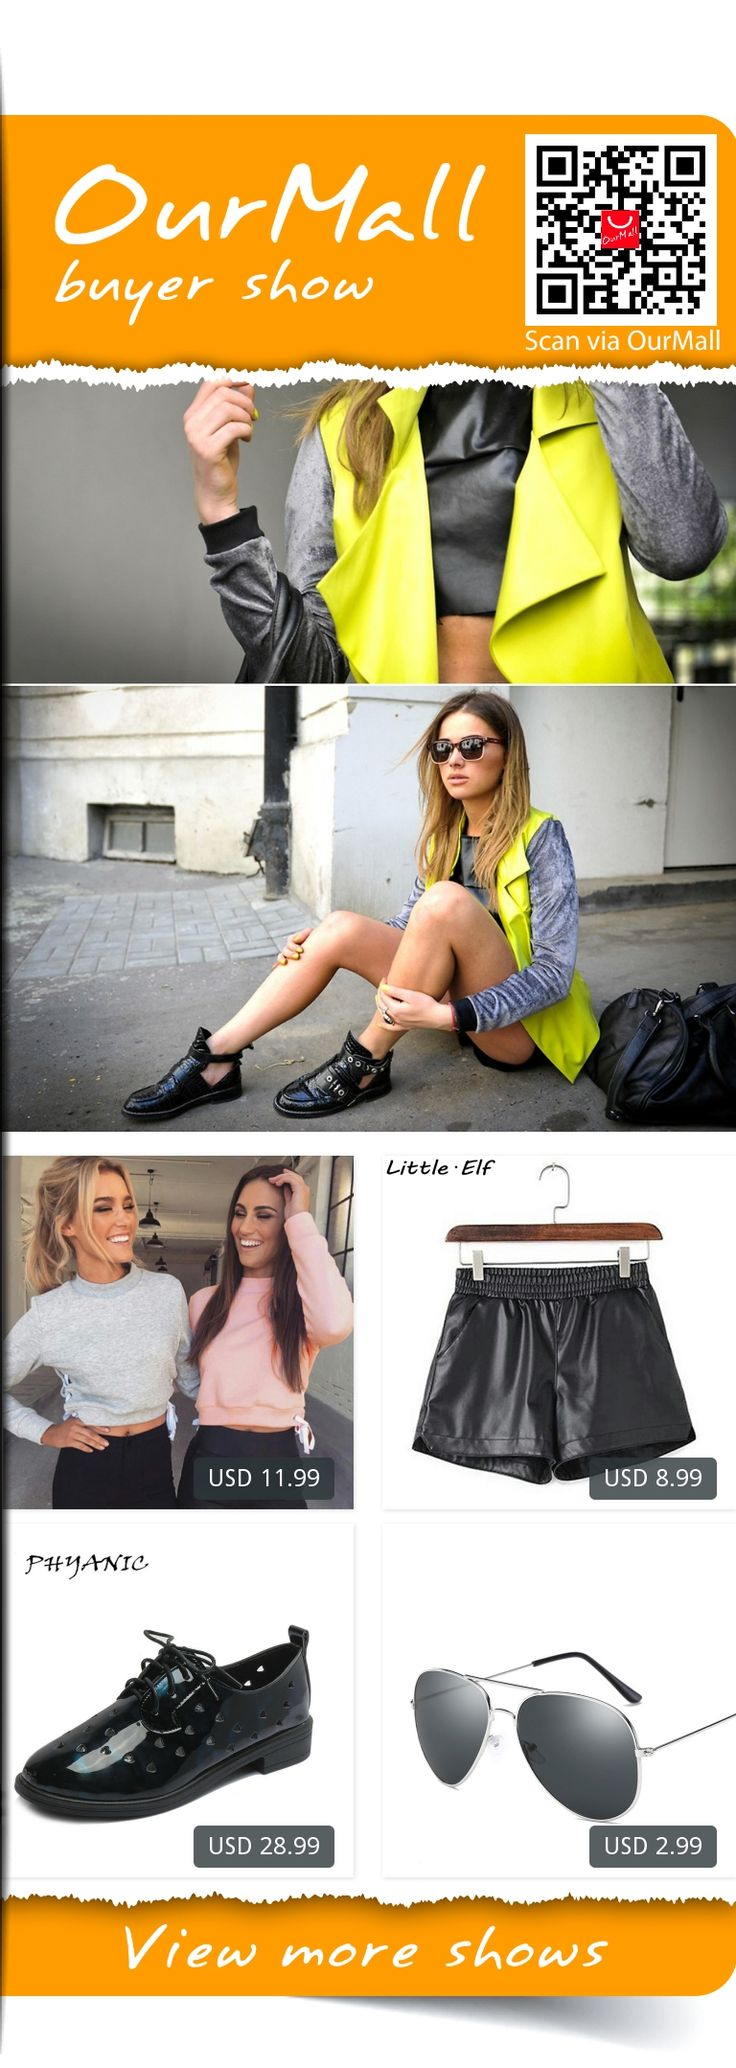 This is Juliett Kuczynska's buyer show in OurMall;  1.Tracksuit 2 Colors Hoodie Women Sweatshirt Side Cross Long Sleeve Pink 2.Summer Spring Sexy Black Shorts Women's Slim Fit PU Leather Shorts female casual 3.New Women's Fashion Spring Summer Hollow Flat Womens Casual Martin Boot... please click the picture for detail. http://ourmall.com/?vUnqQf  #vest #womenvest #denimvest #fashionvest #sleevenessvest #vestforgirls #vestforwomen #casualvest #sportsvest #springvest